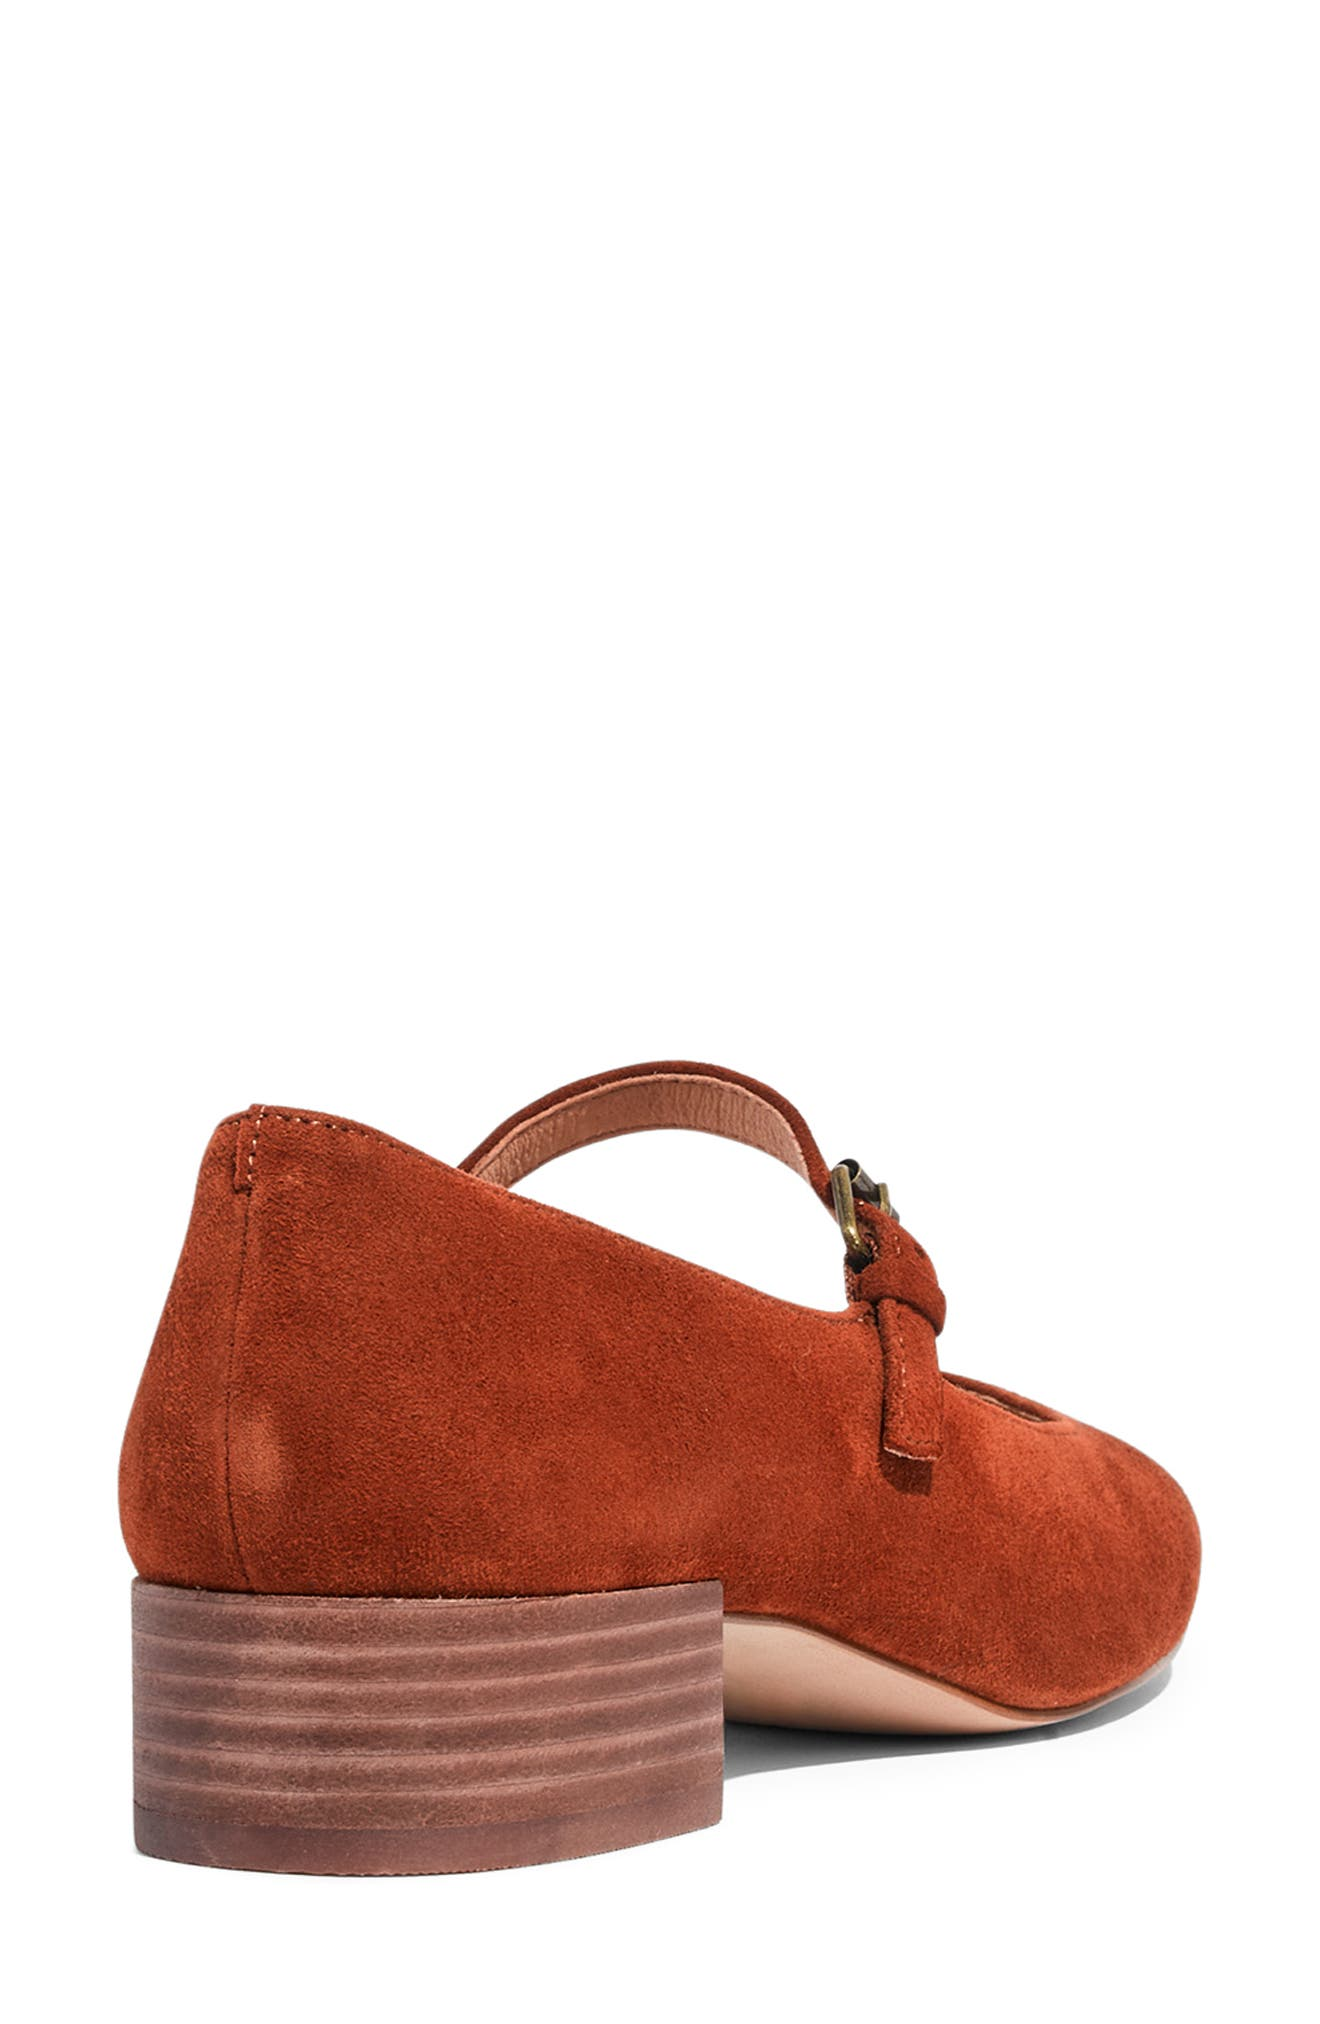 The Delilah Mary Jane Pump,                             Alternate thumbnail 8, color,                             MAPLE SYRUP SUEDE